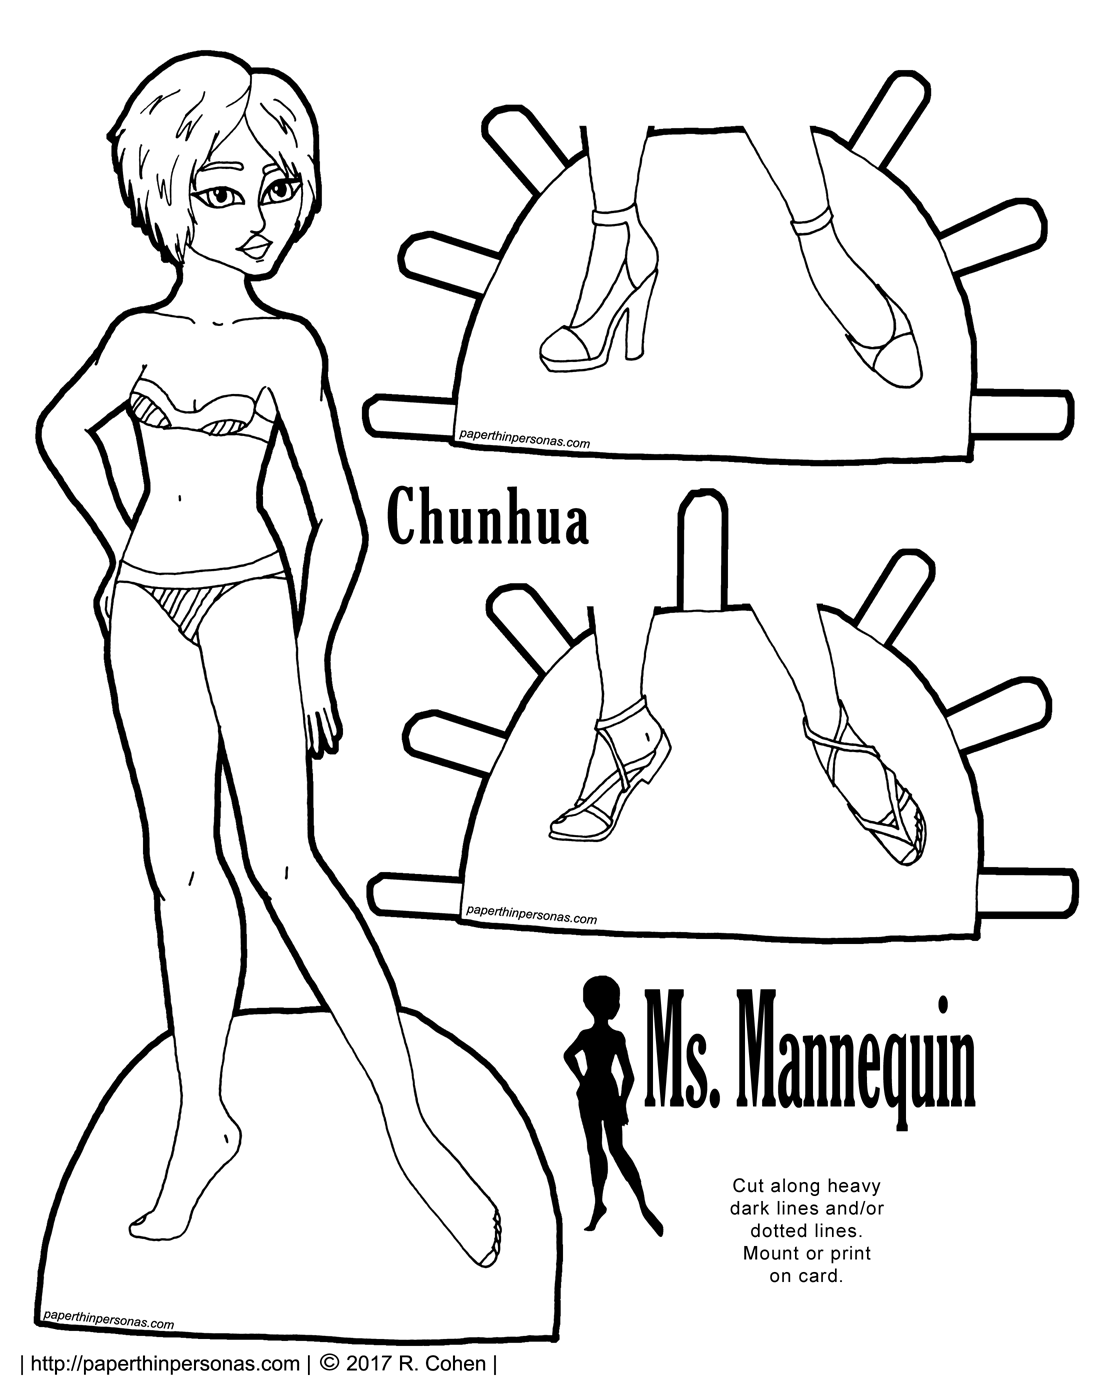 An East Indian paper doll named Kamala with shoes. She's part of the Ms. Mannequin series and can share clothing with any of those paper dolls.